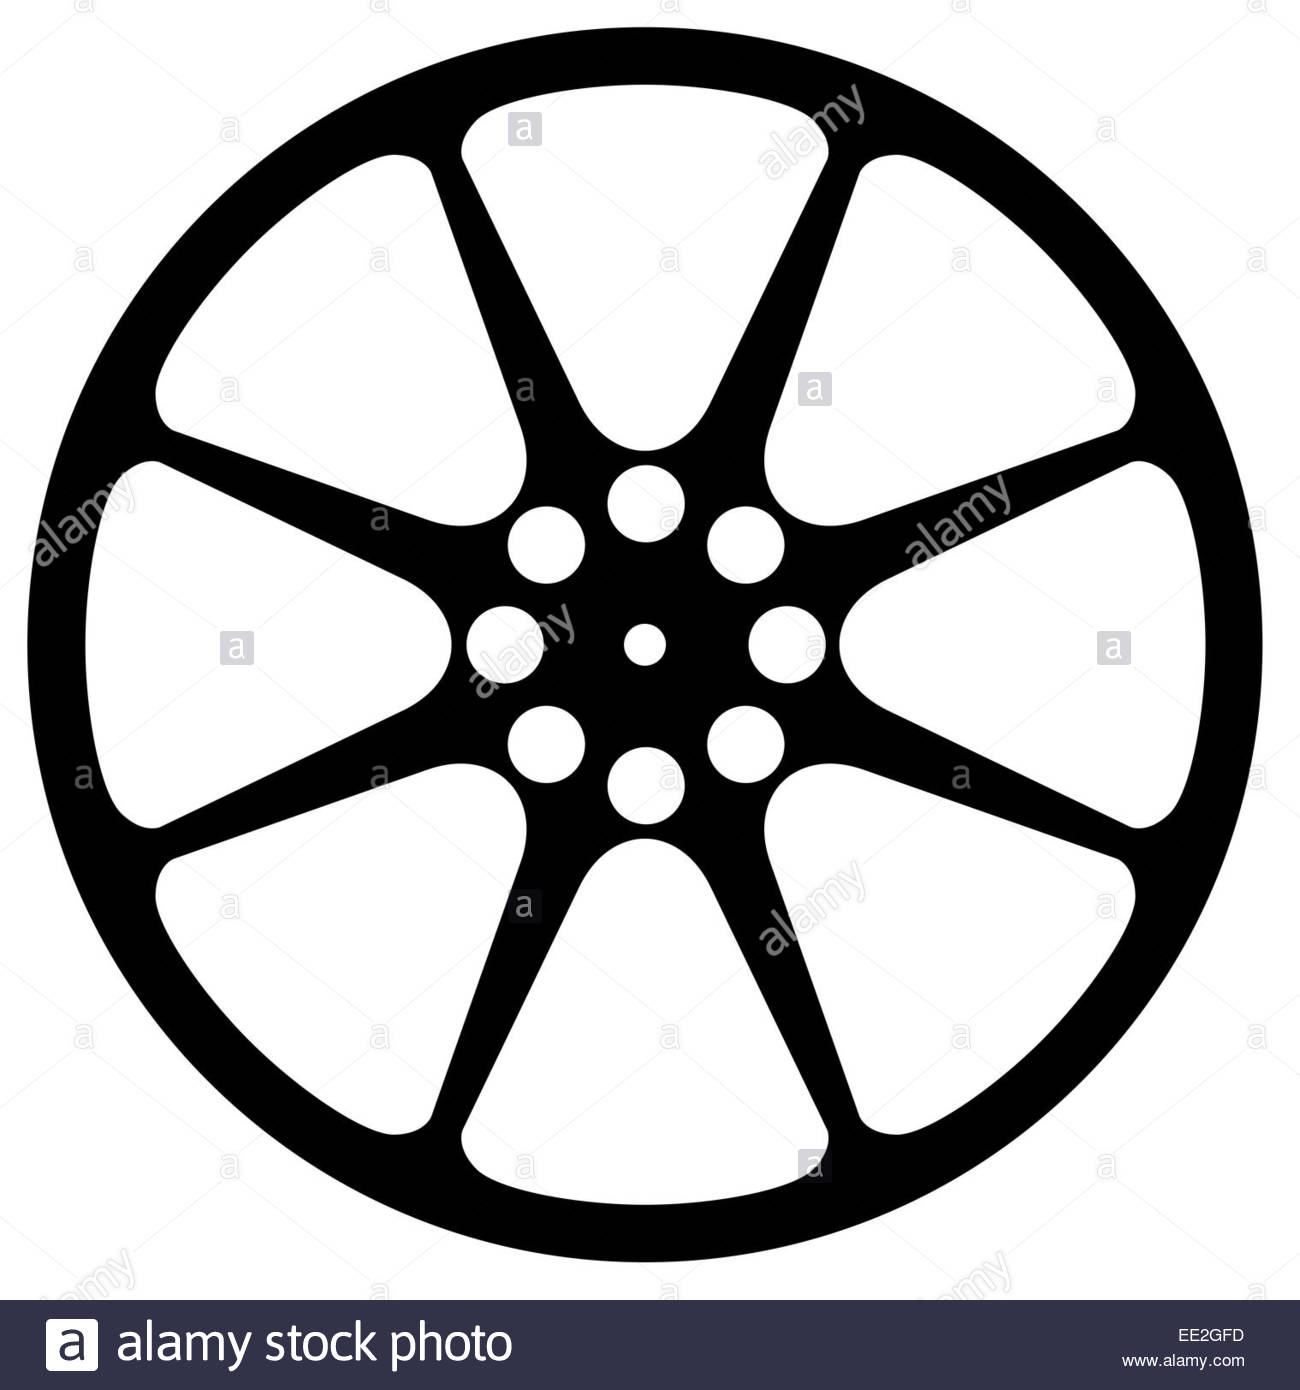 1300x1390 Cinema Movie Film Reel Silhouette Isolated Over A White Background